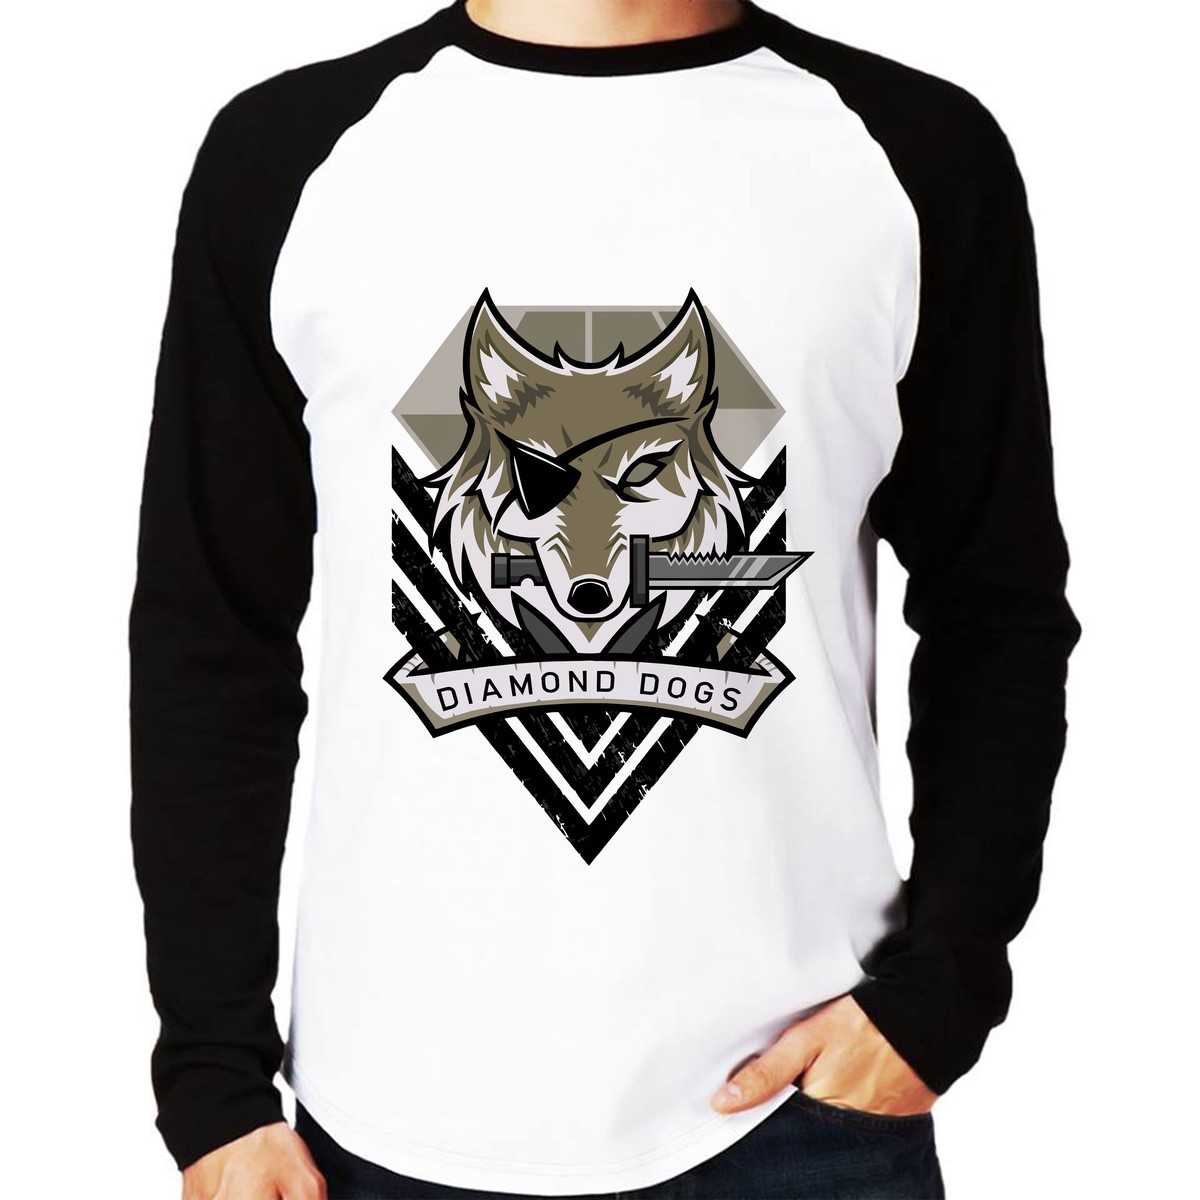 b2d05a33355bb Camisa Raglan Metal Gear Solid V Diamond Dogs Manga Longa no Elo7 ...